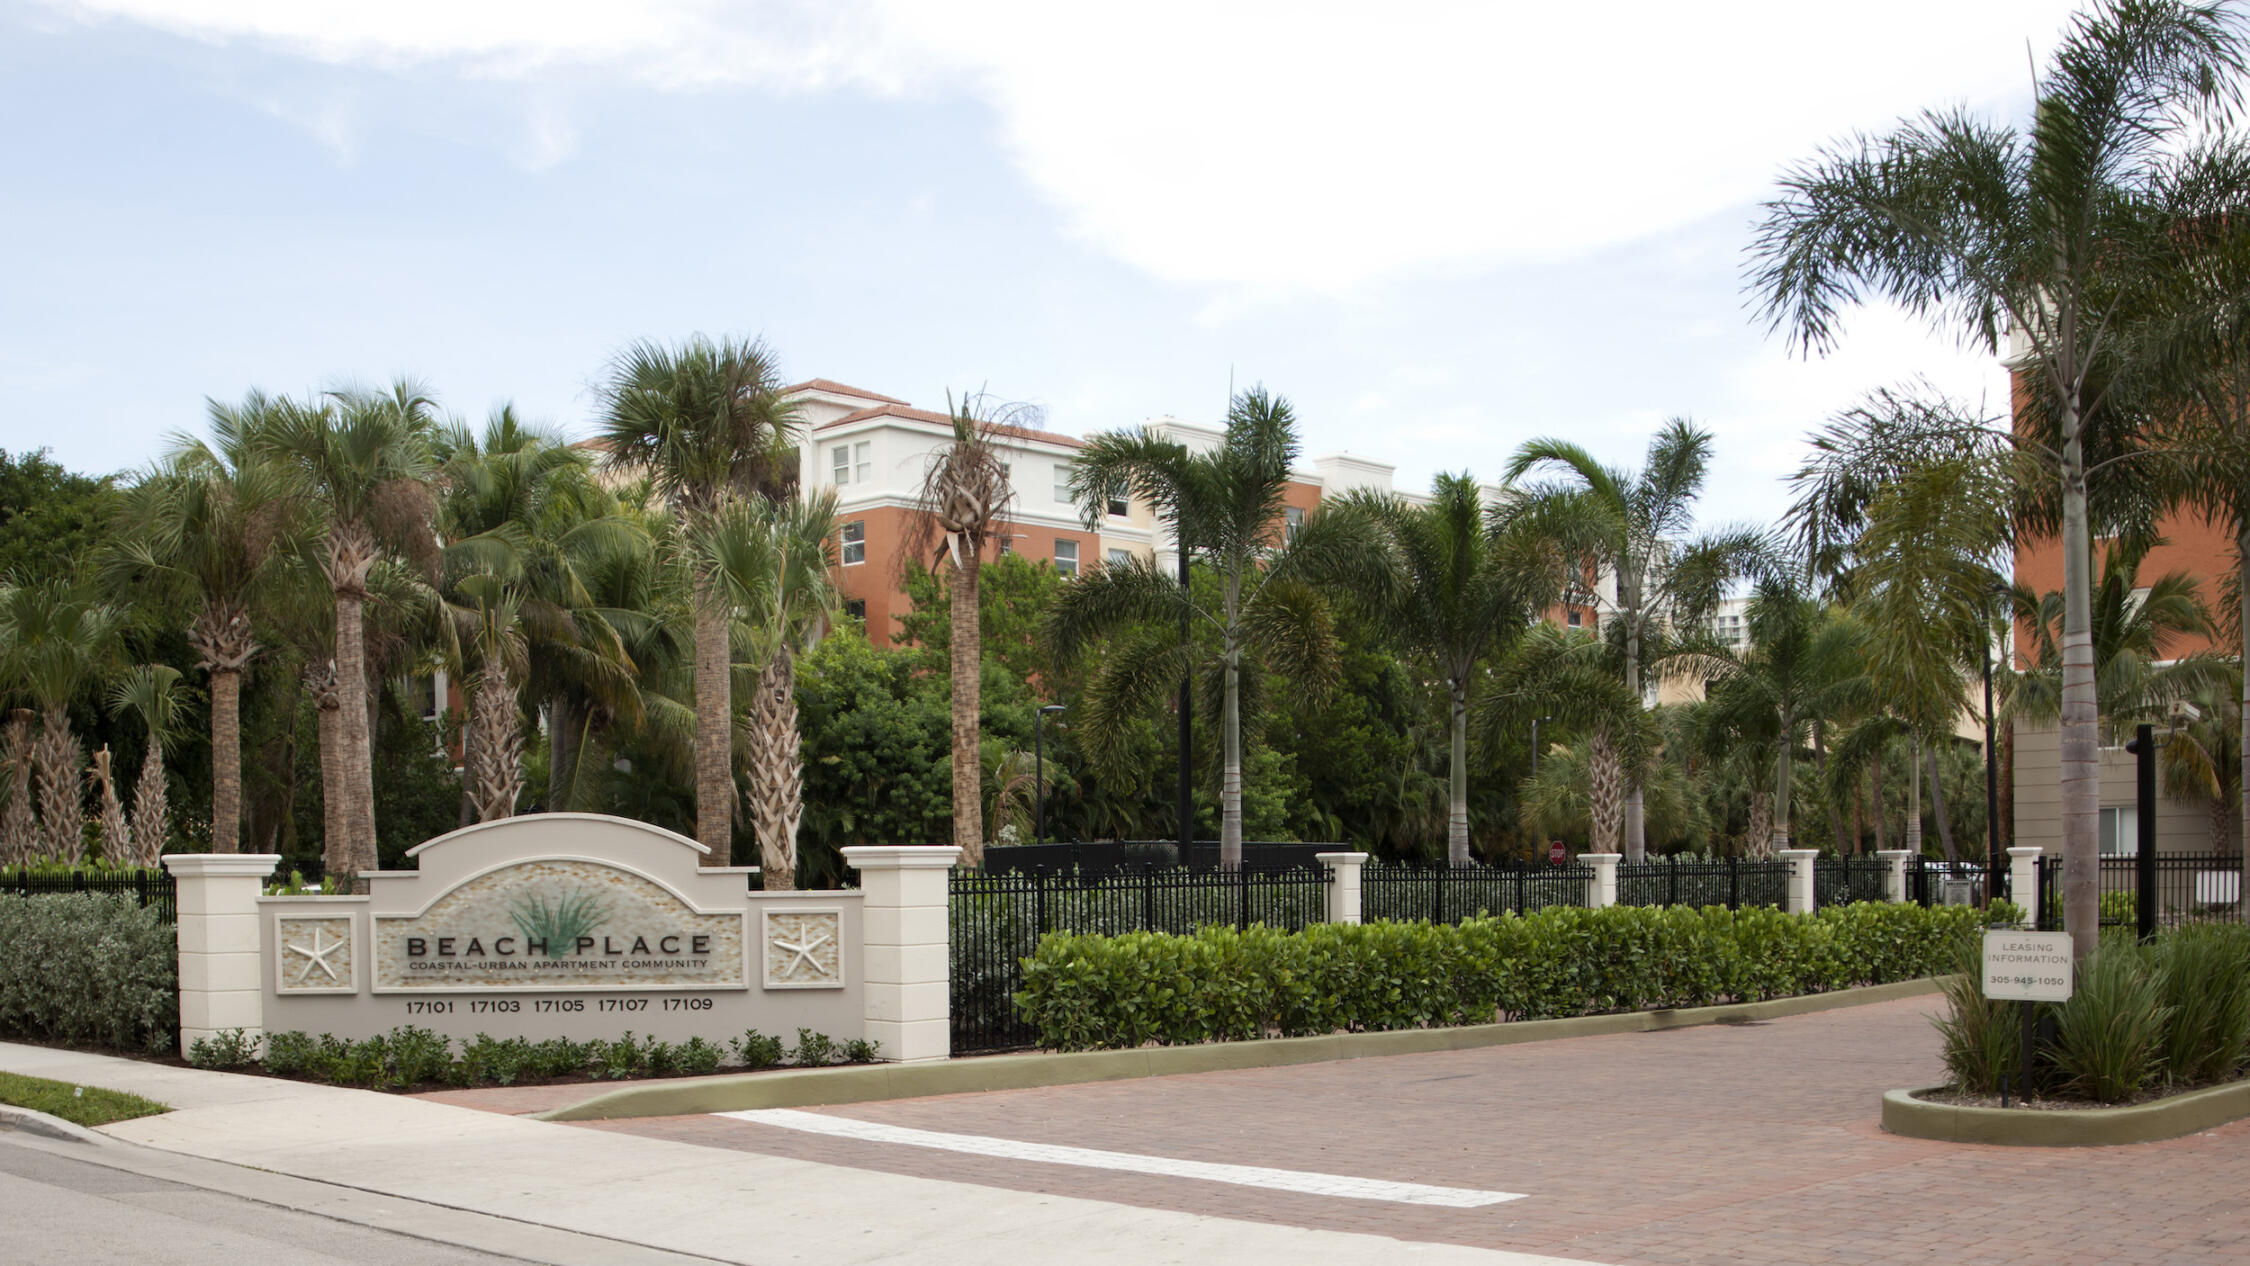 Beach Place main entrance driveway with monument sign and palm trees